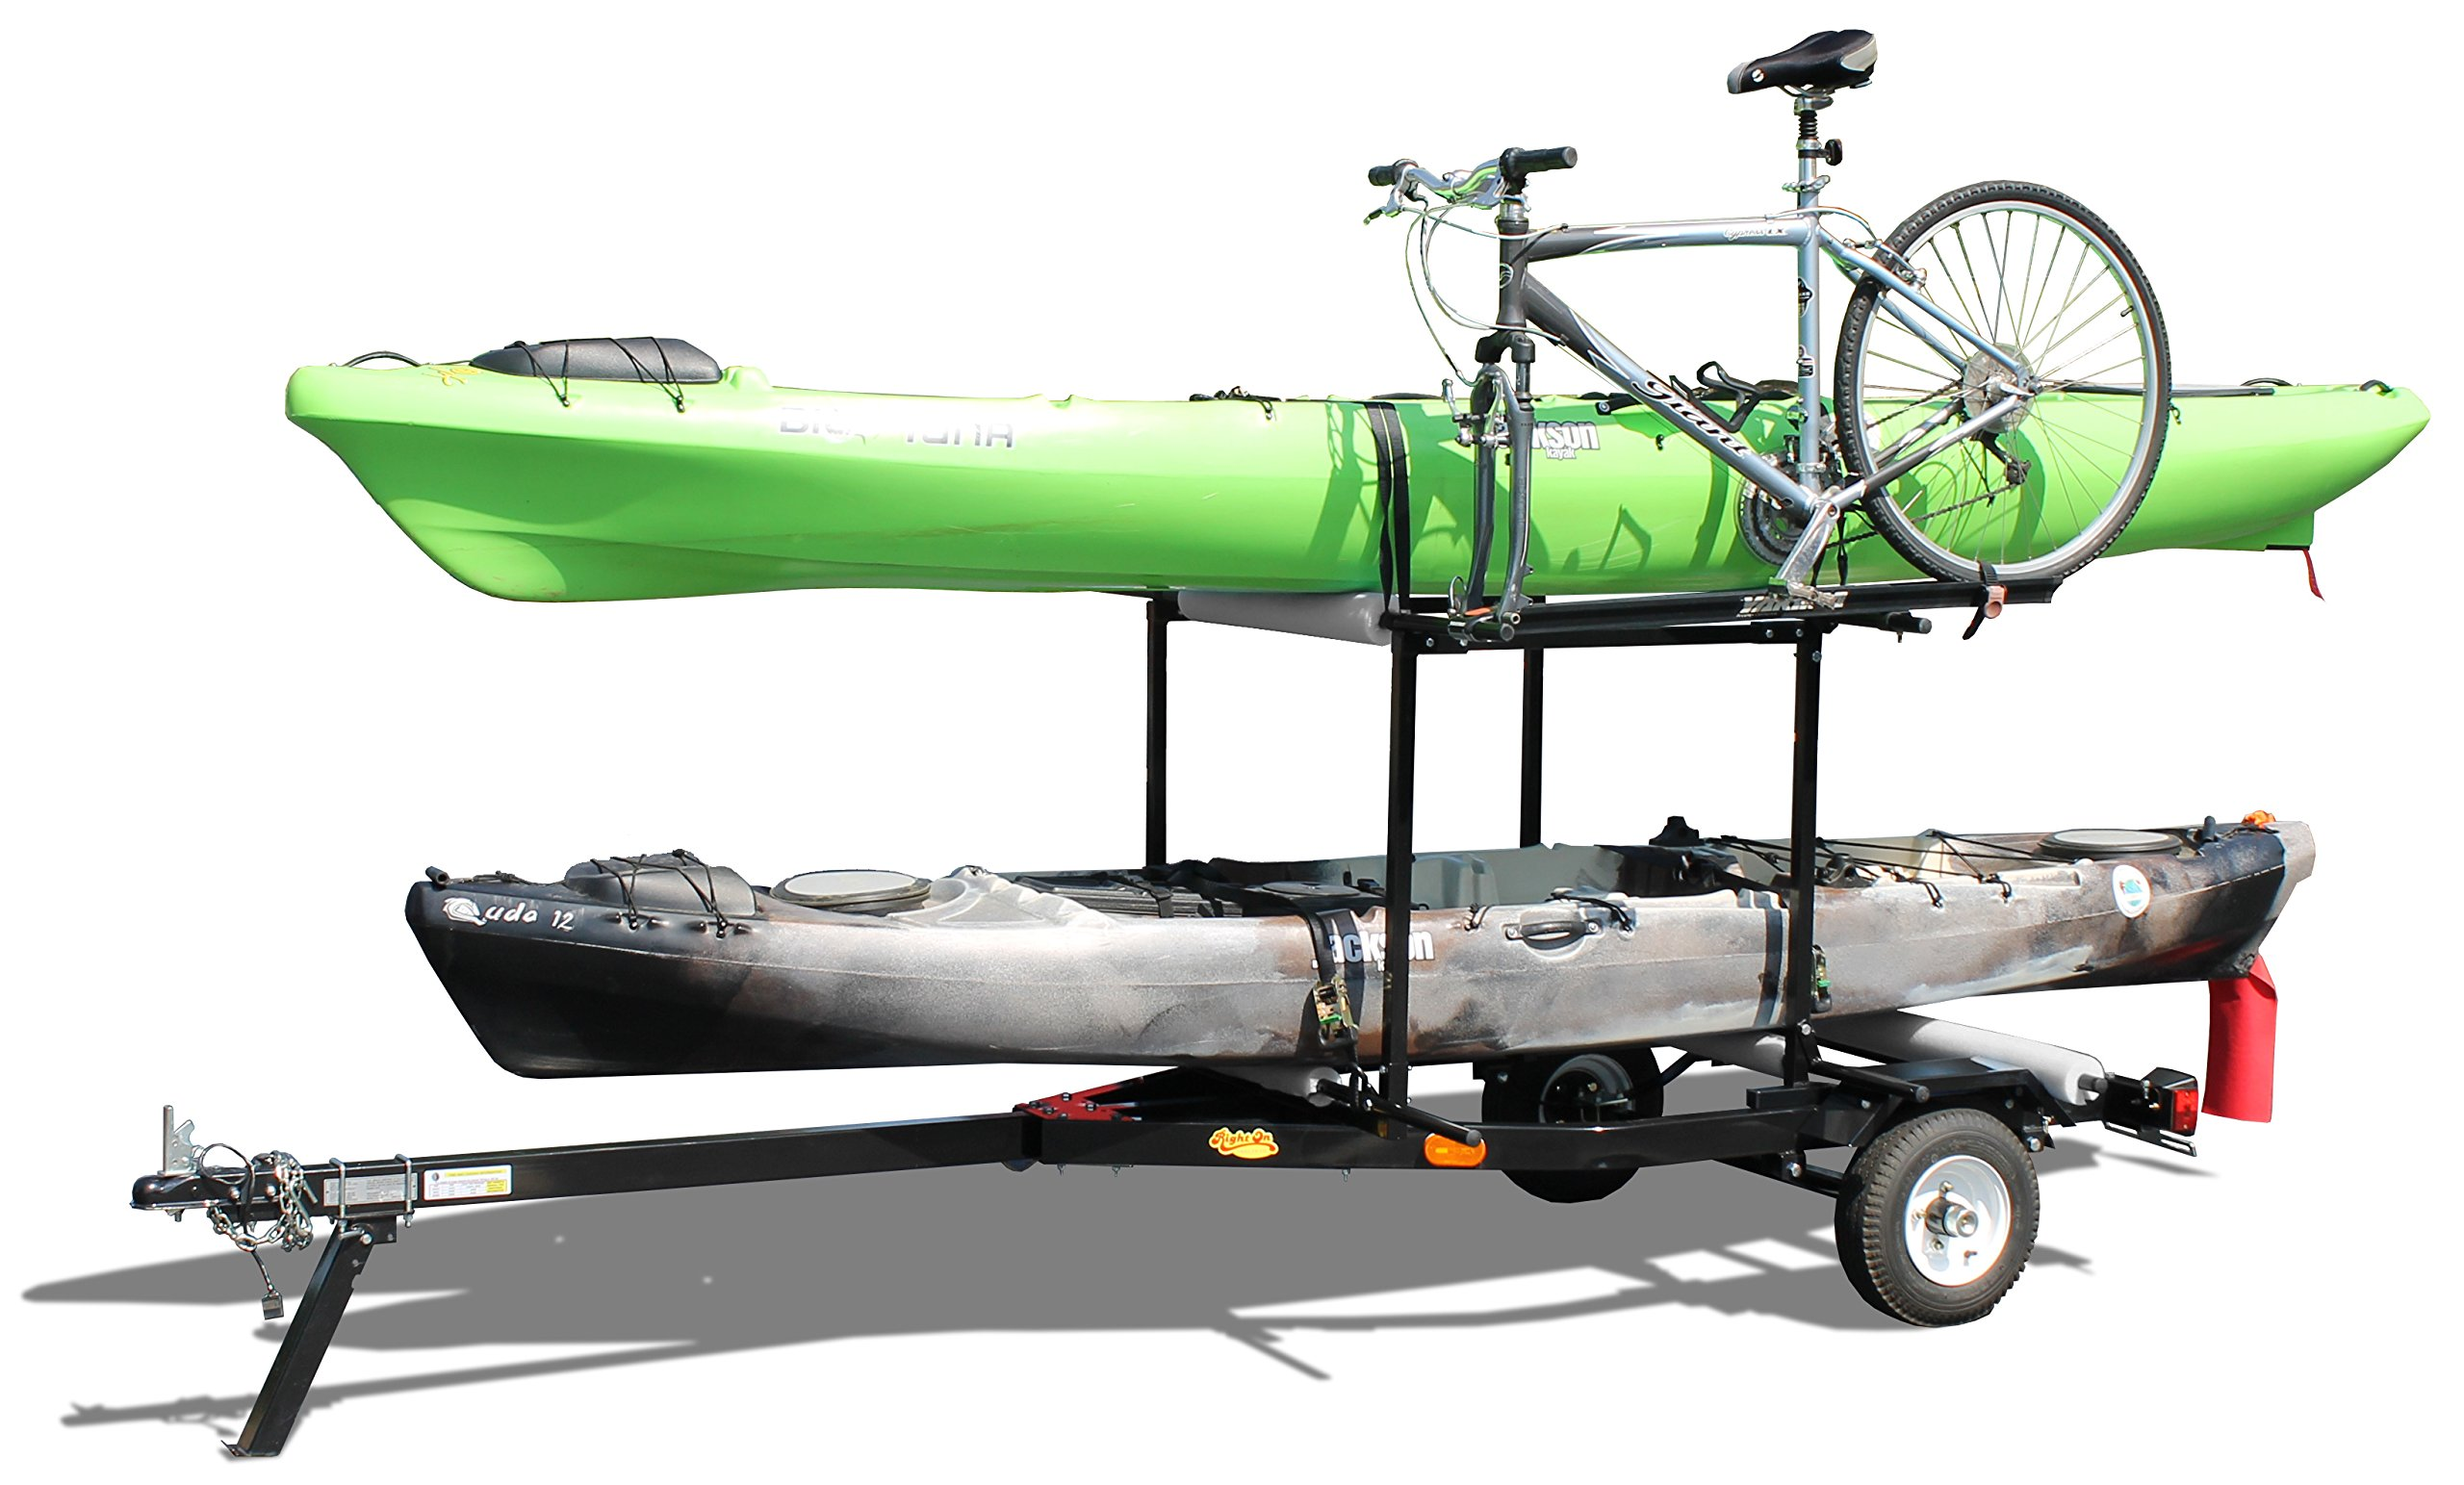 Multi-Sport Rack Trailer for Kayaks, Sups, Canoes, & Bicycles